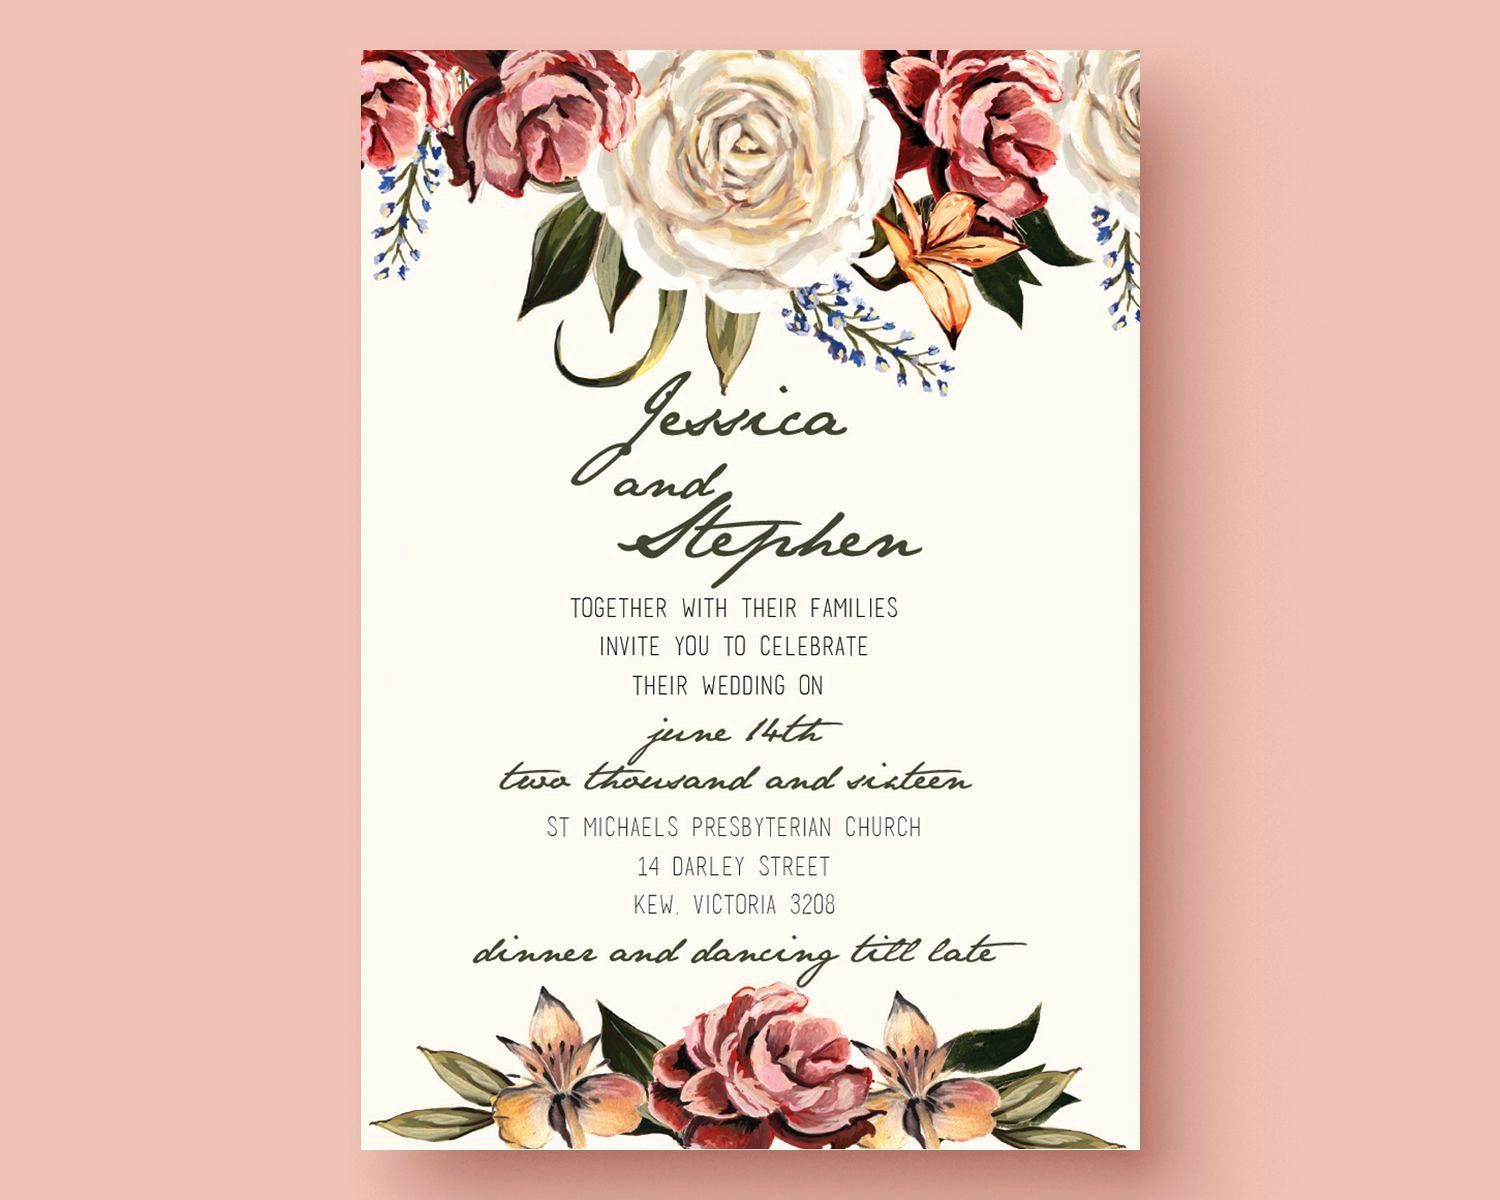 001 Outstanding Printable Wedding Invitation Template Highest Quality  Free For Microsoft Word VintageFull